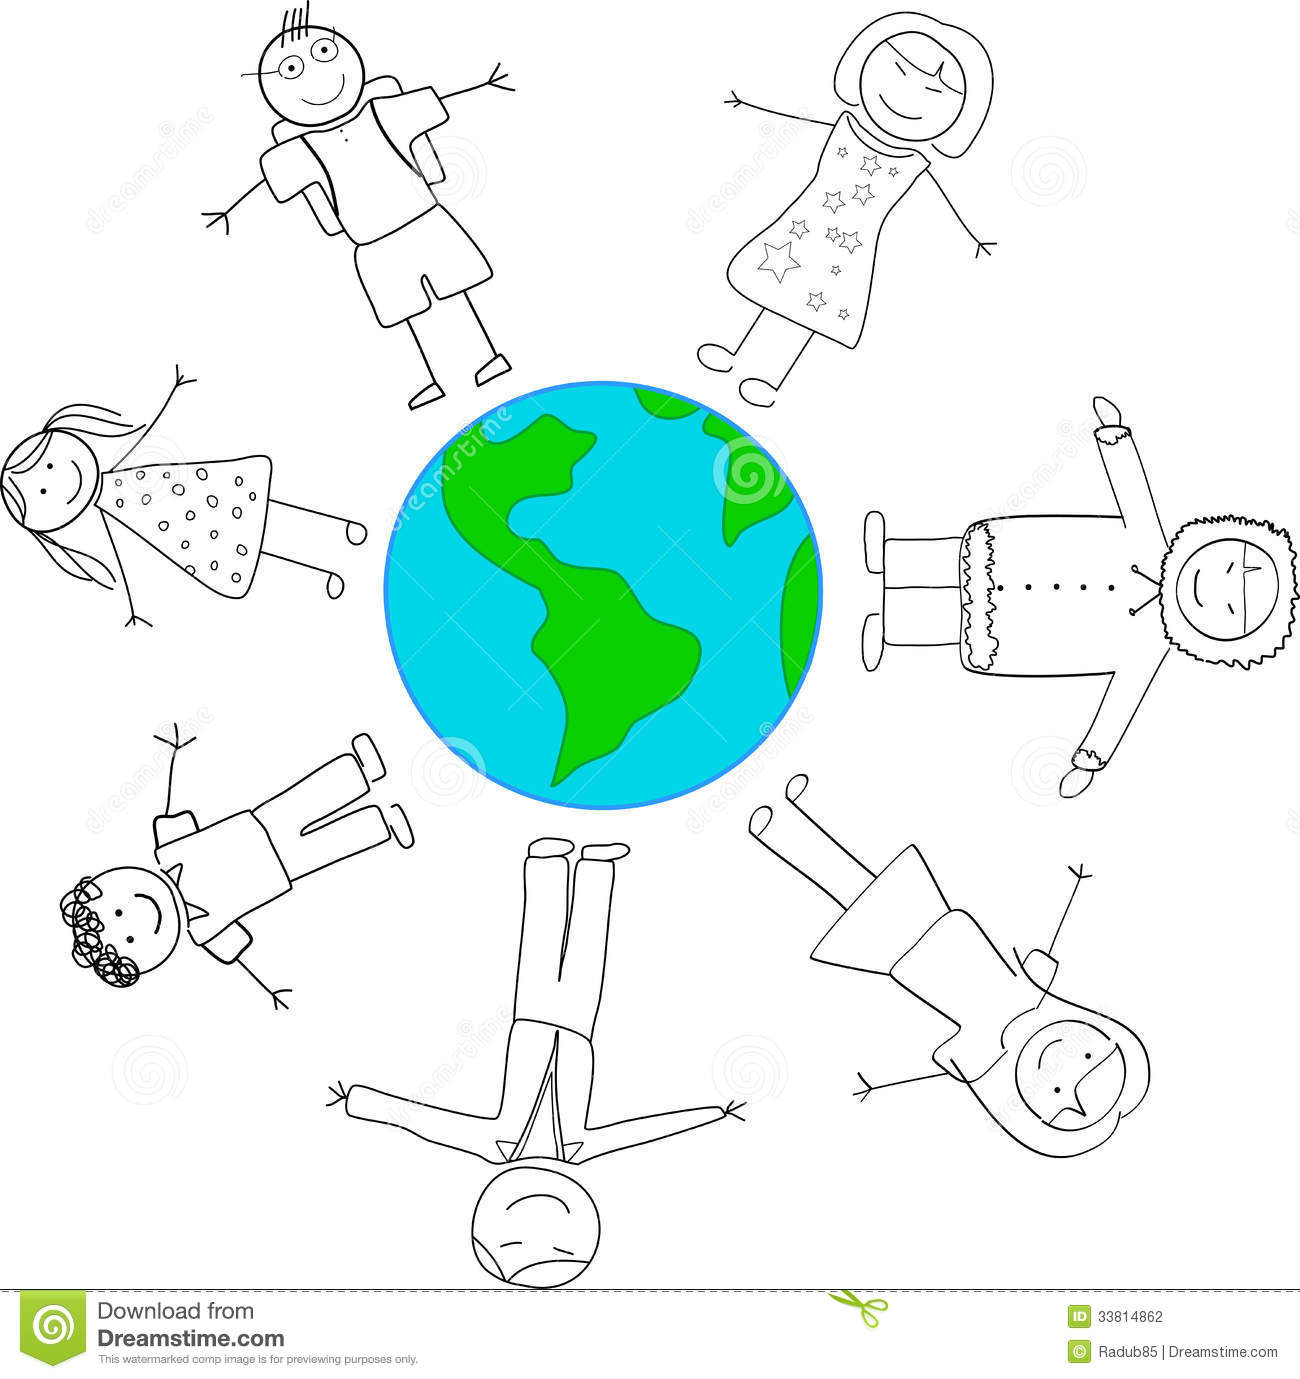 Children Cultural Diversity Holding Hands Around Planet Earth